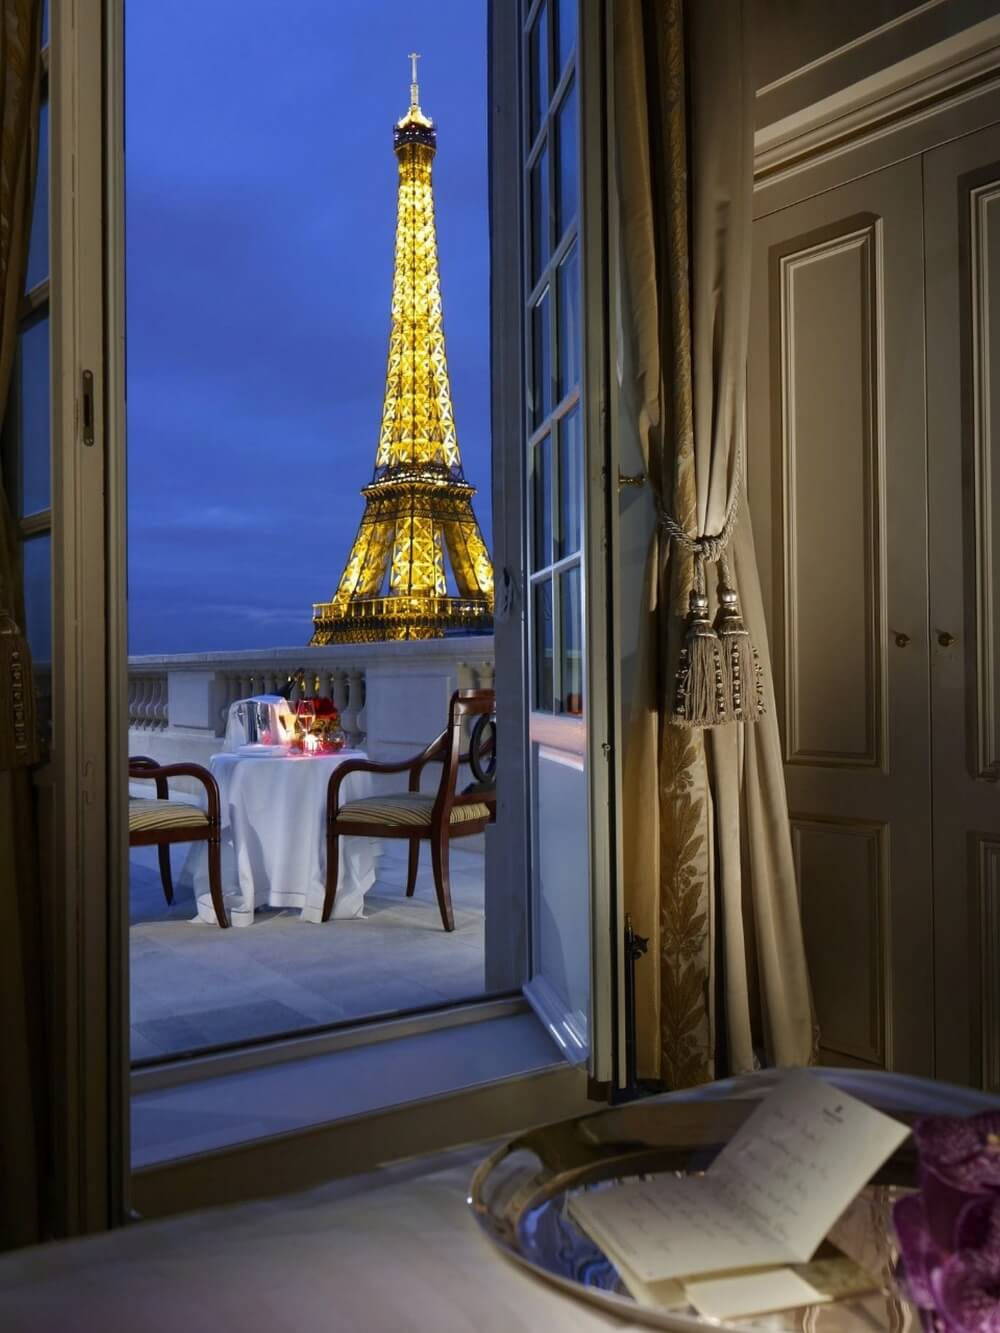 22 Stunning Hotels That Will Make You Want to Book Your Next Trip NOW! - Shangri La, France